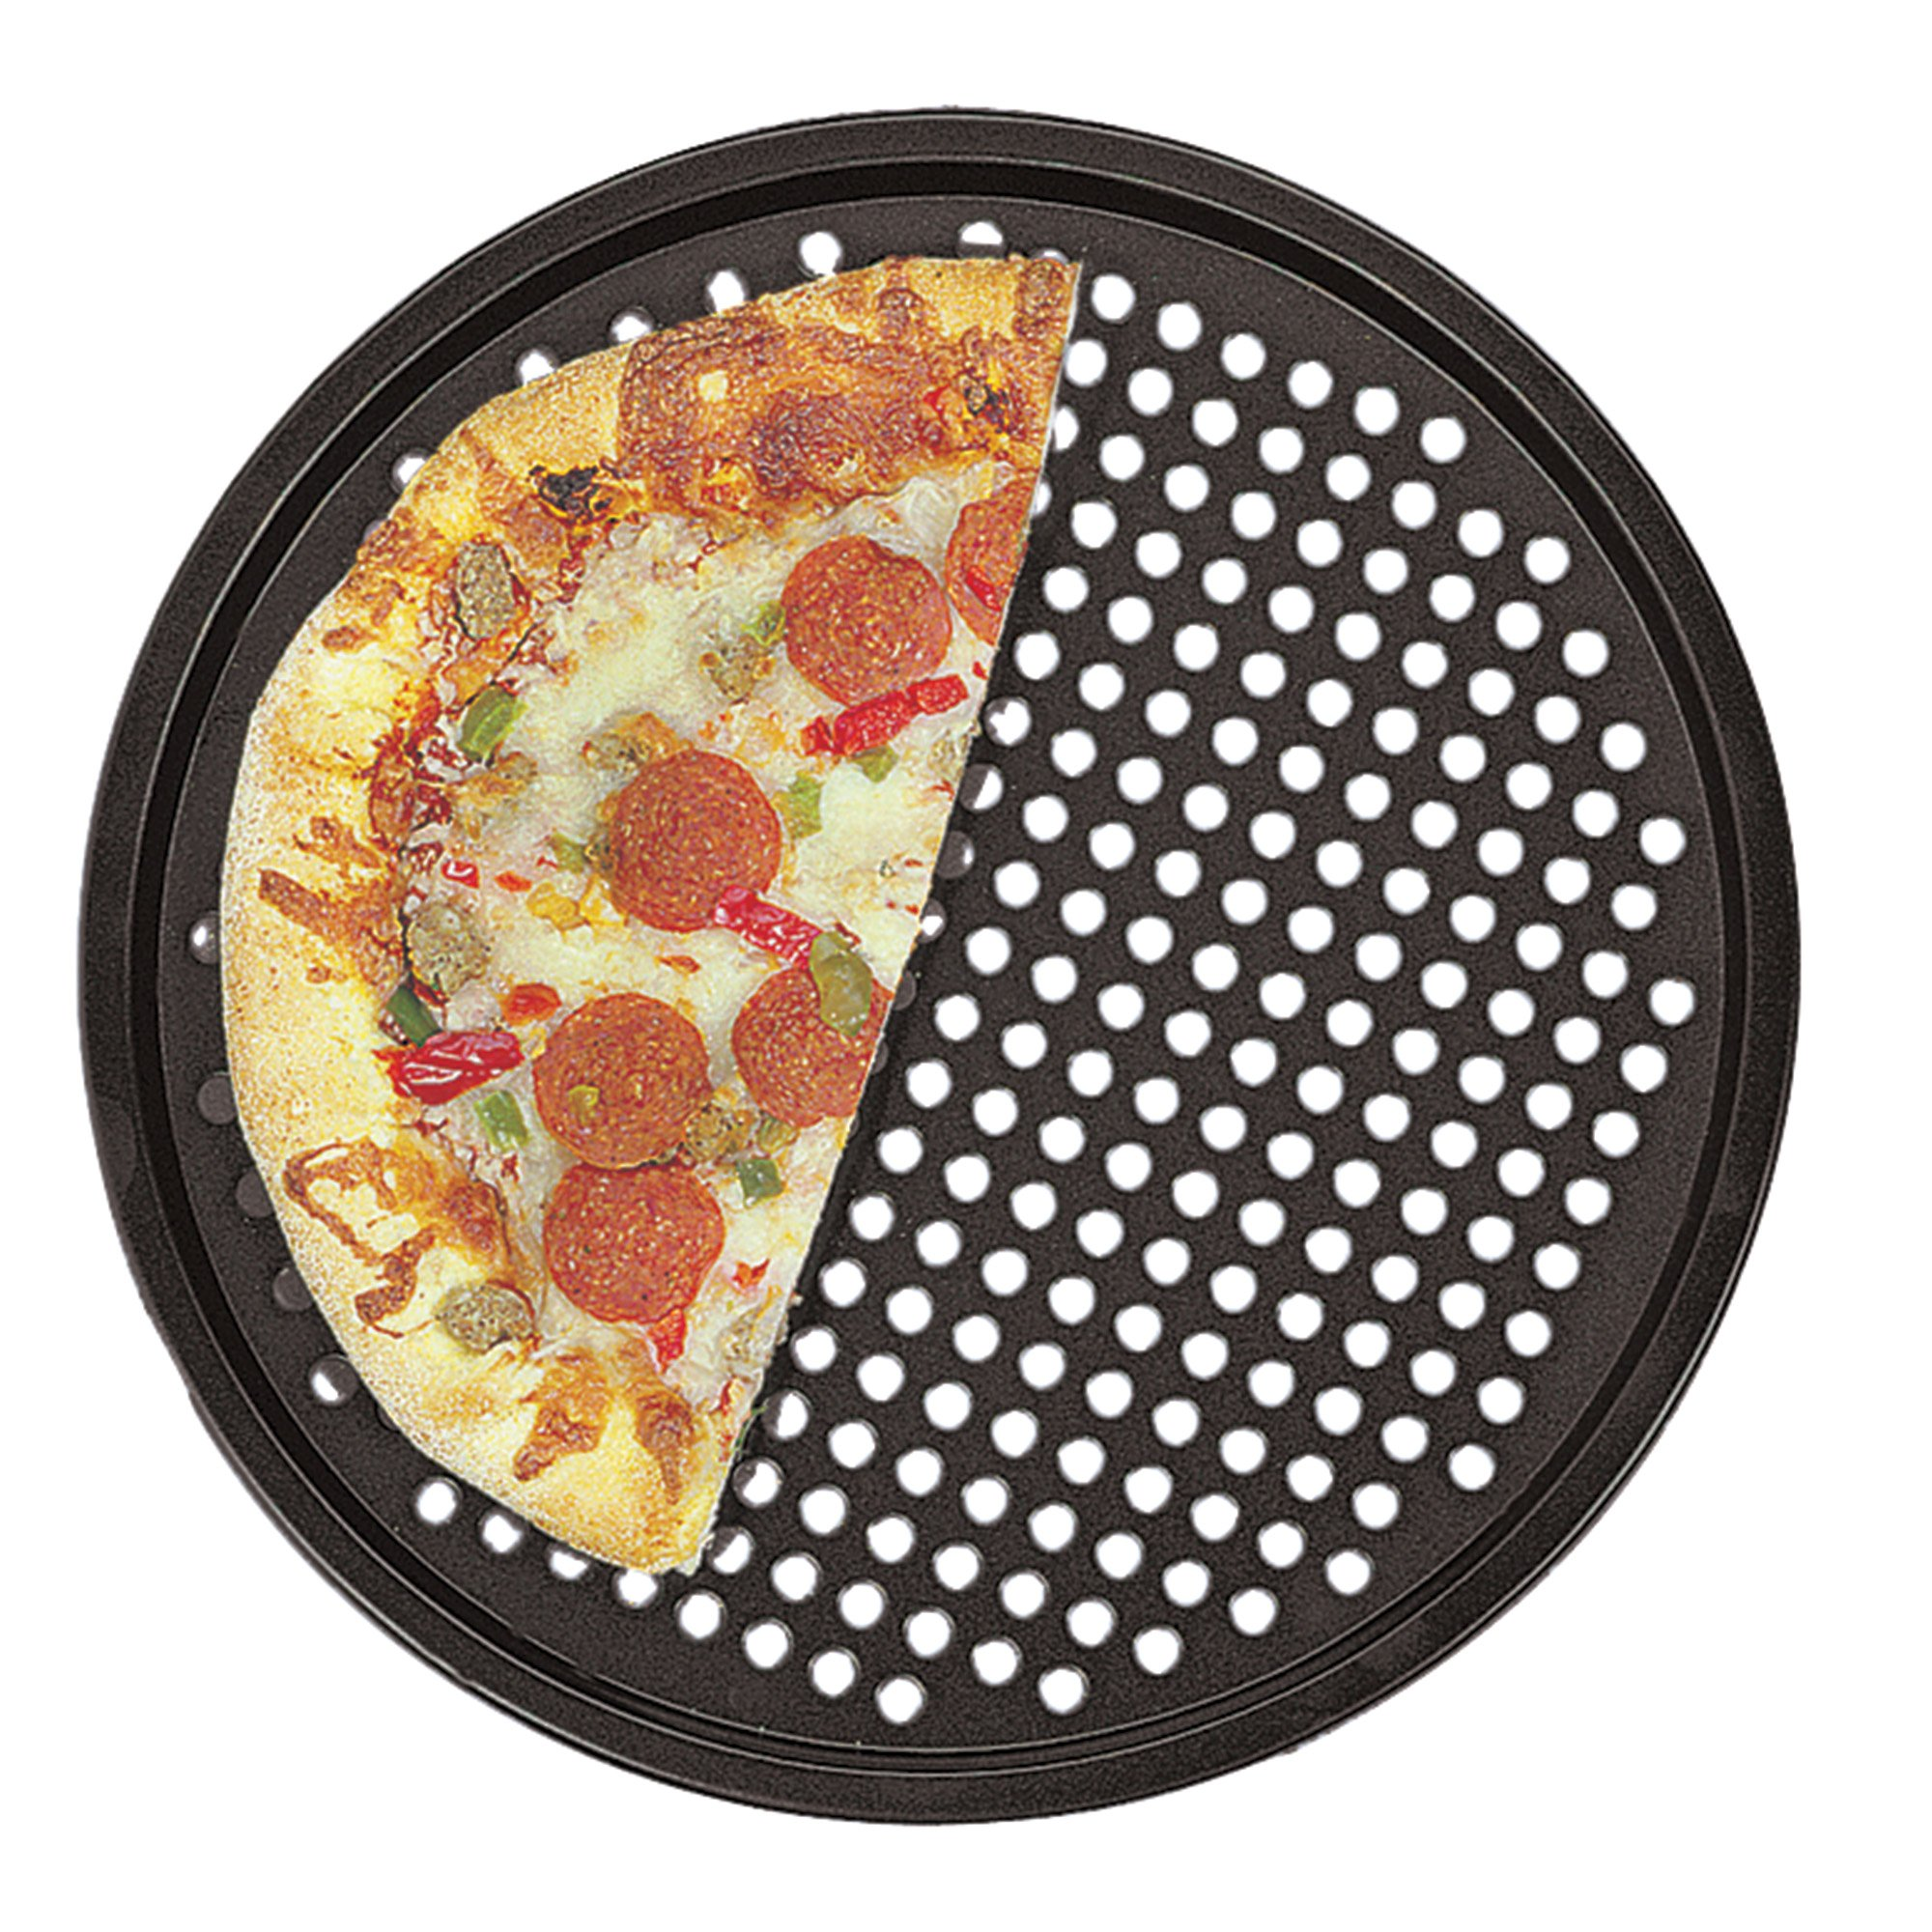 Fox Run 4491 Pizza Crisper Pan, Carbon Steel, Non-Stick by Fox Run (Image #1)